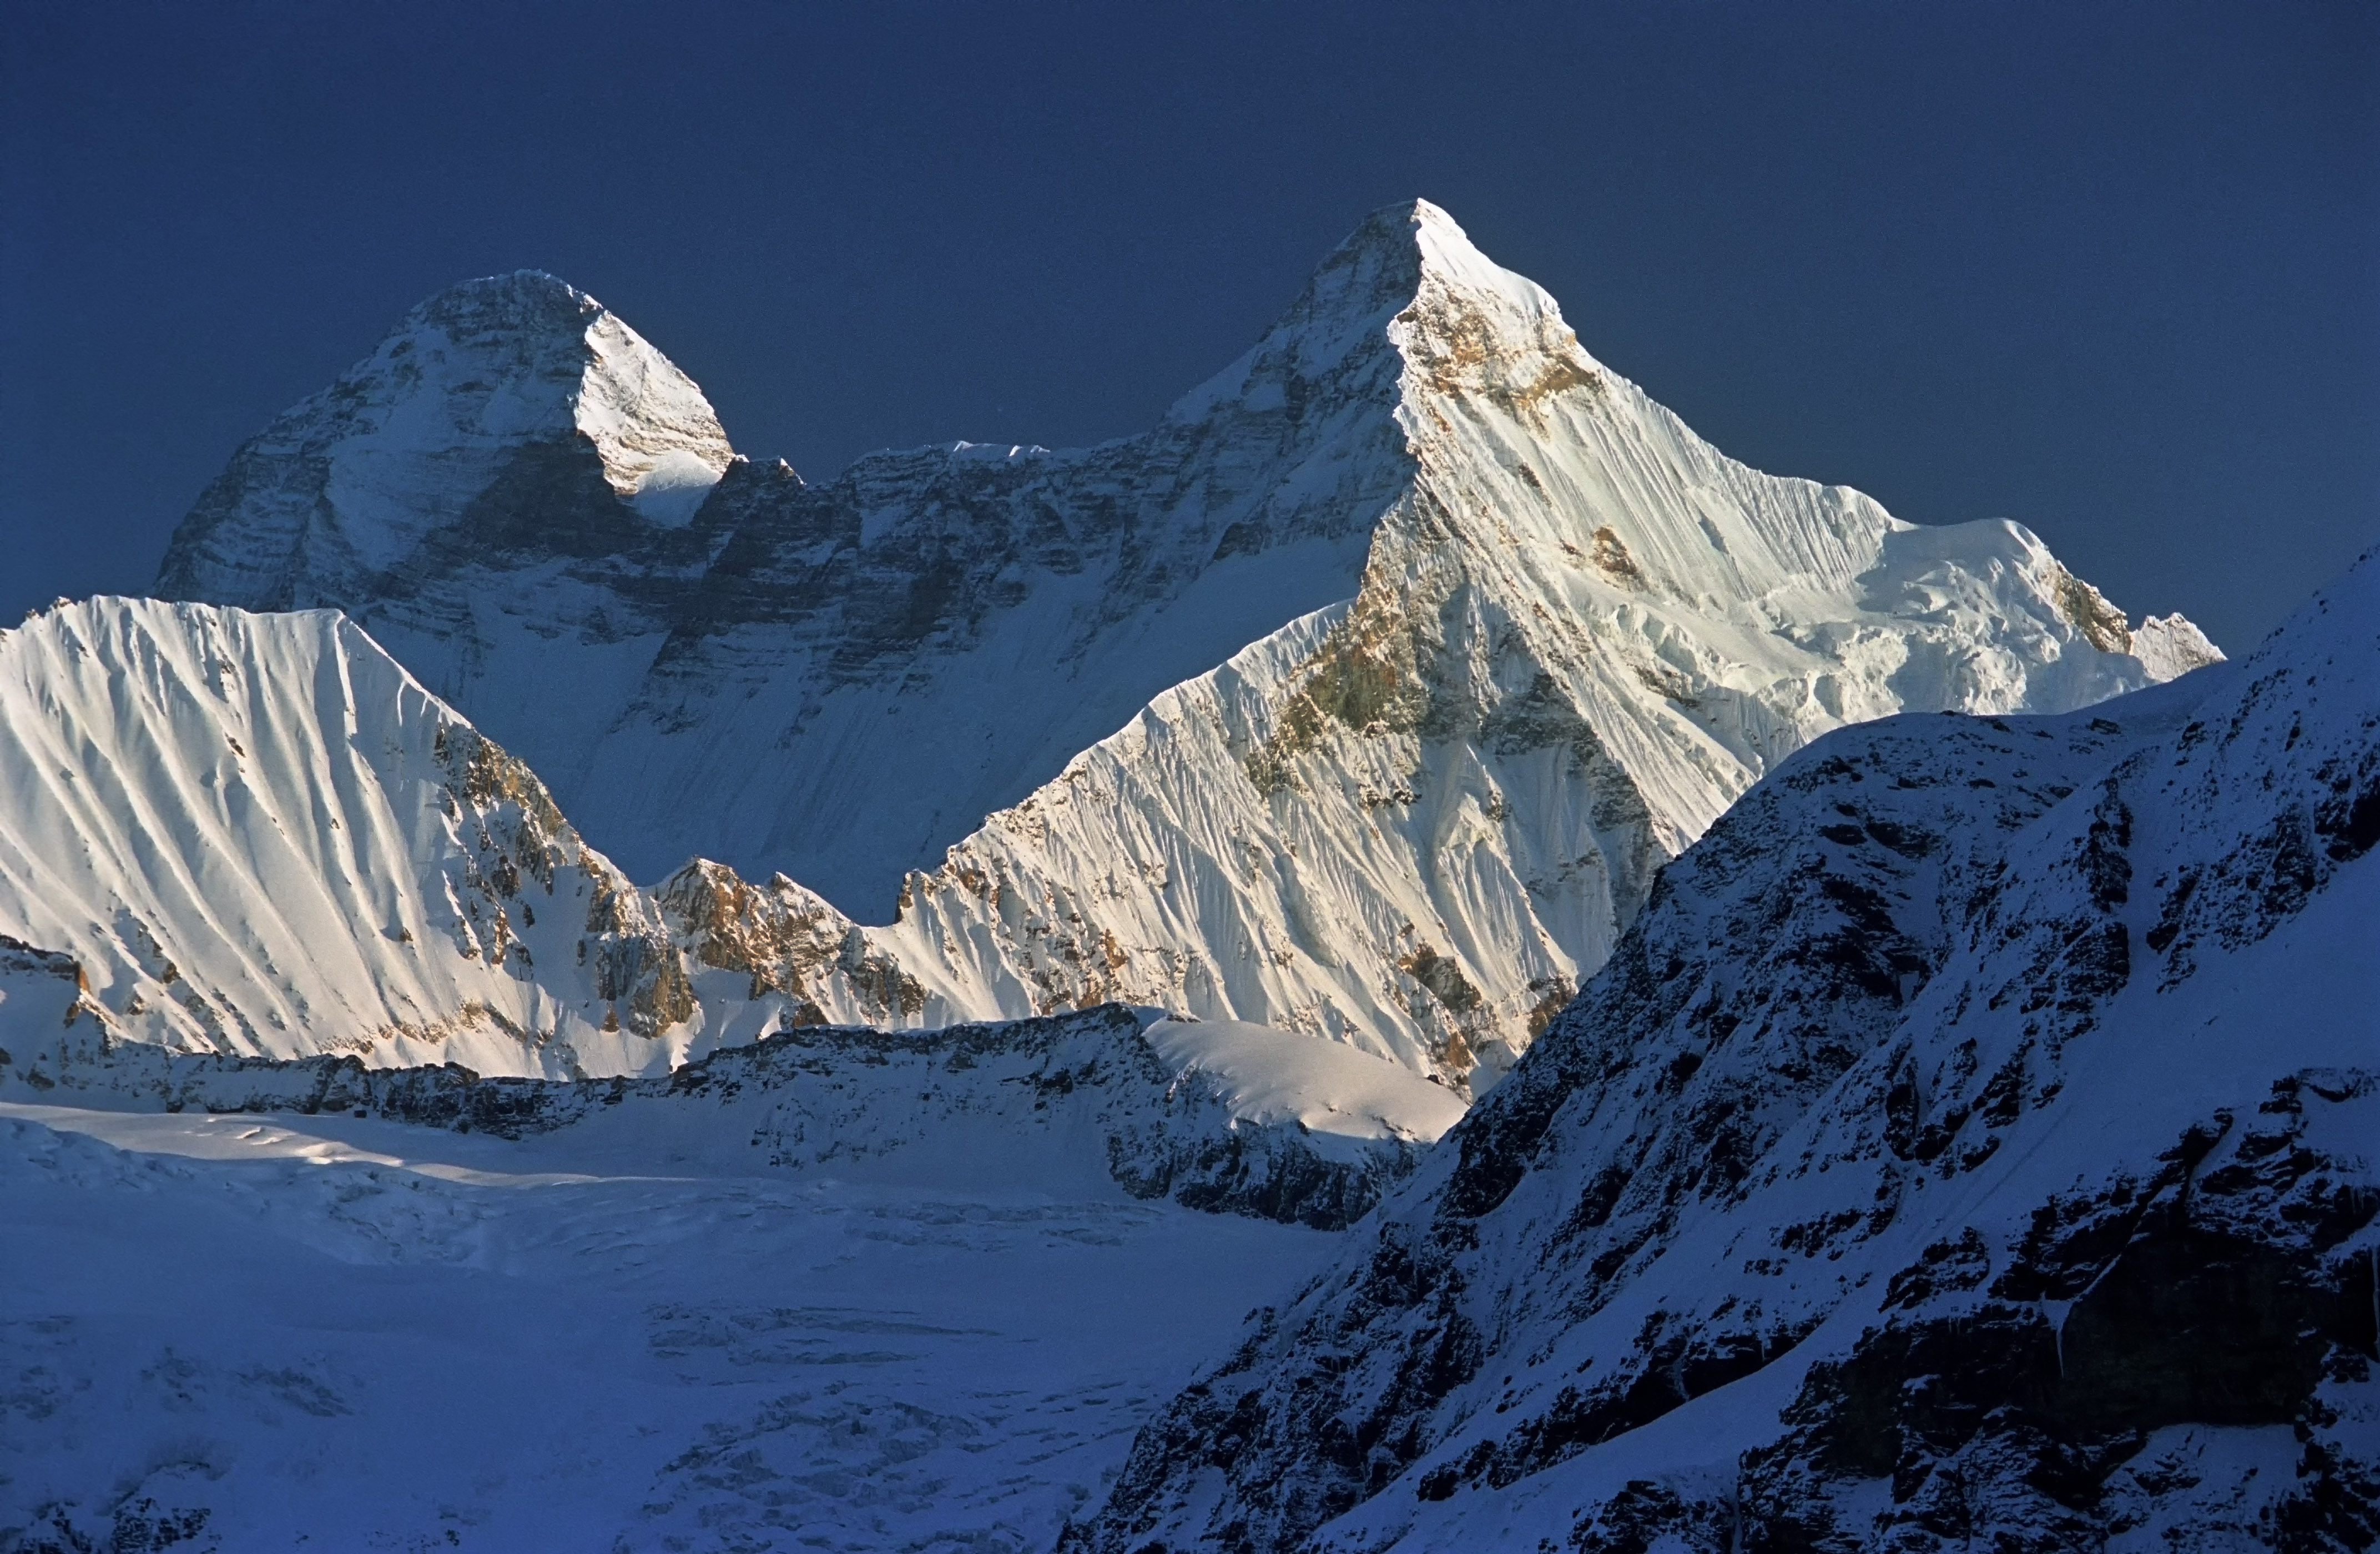 A view of the Nanda Devi and Nanda Devi East twin peak as seen from near Pindari Valley in the Bageshwar district - PTI